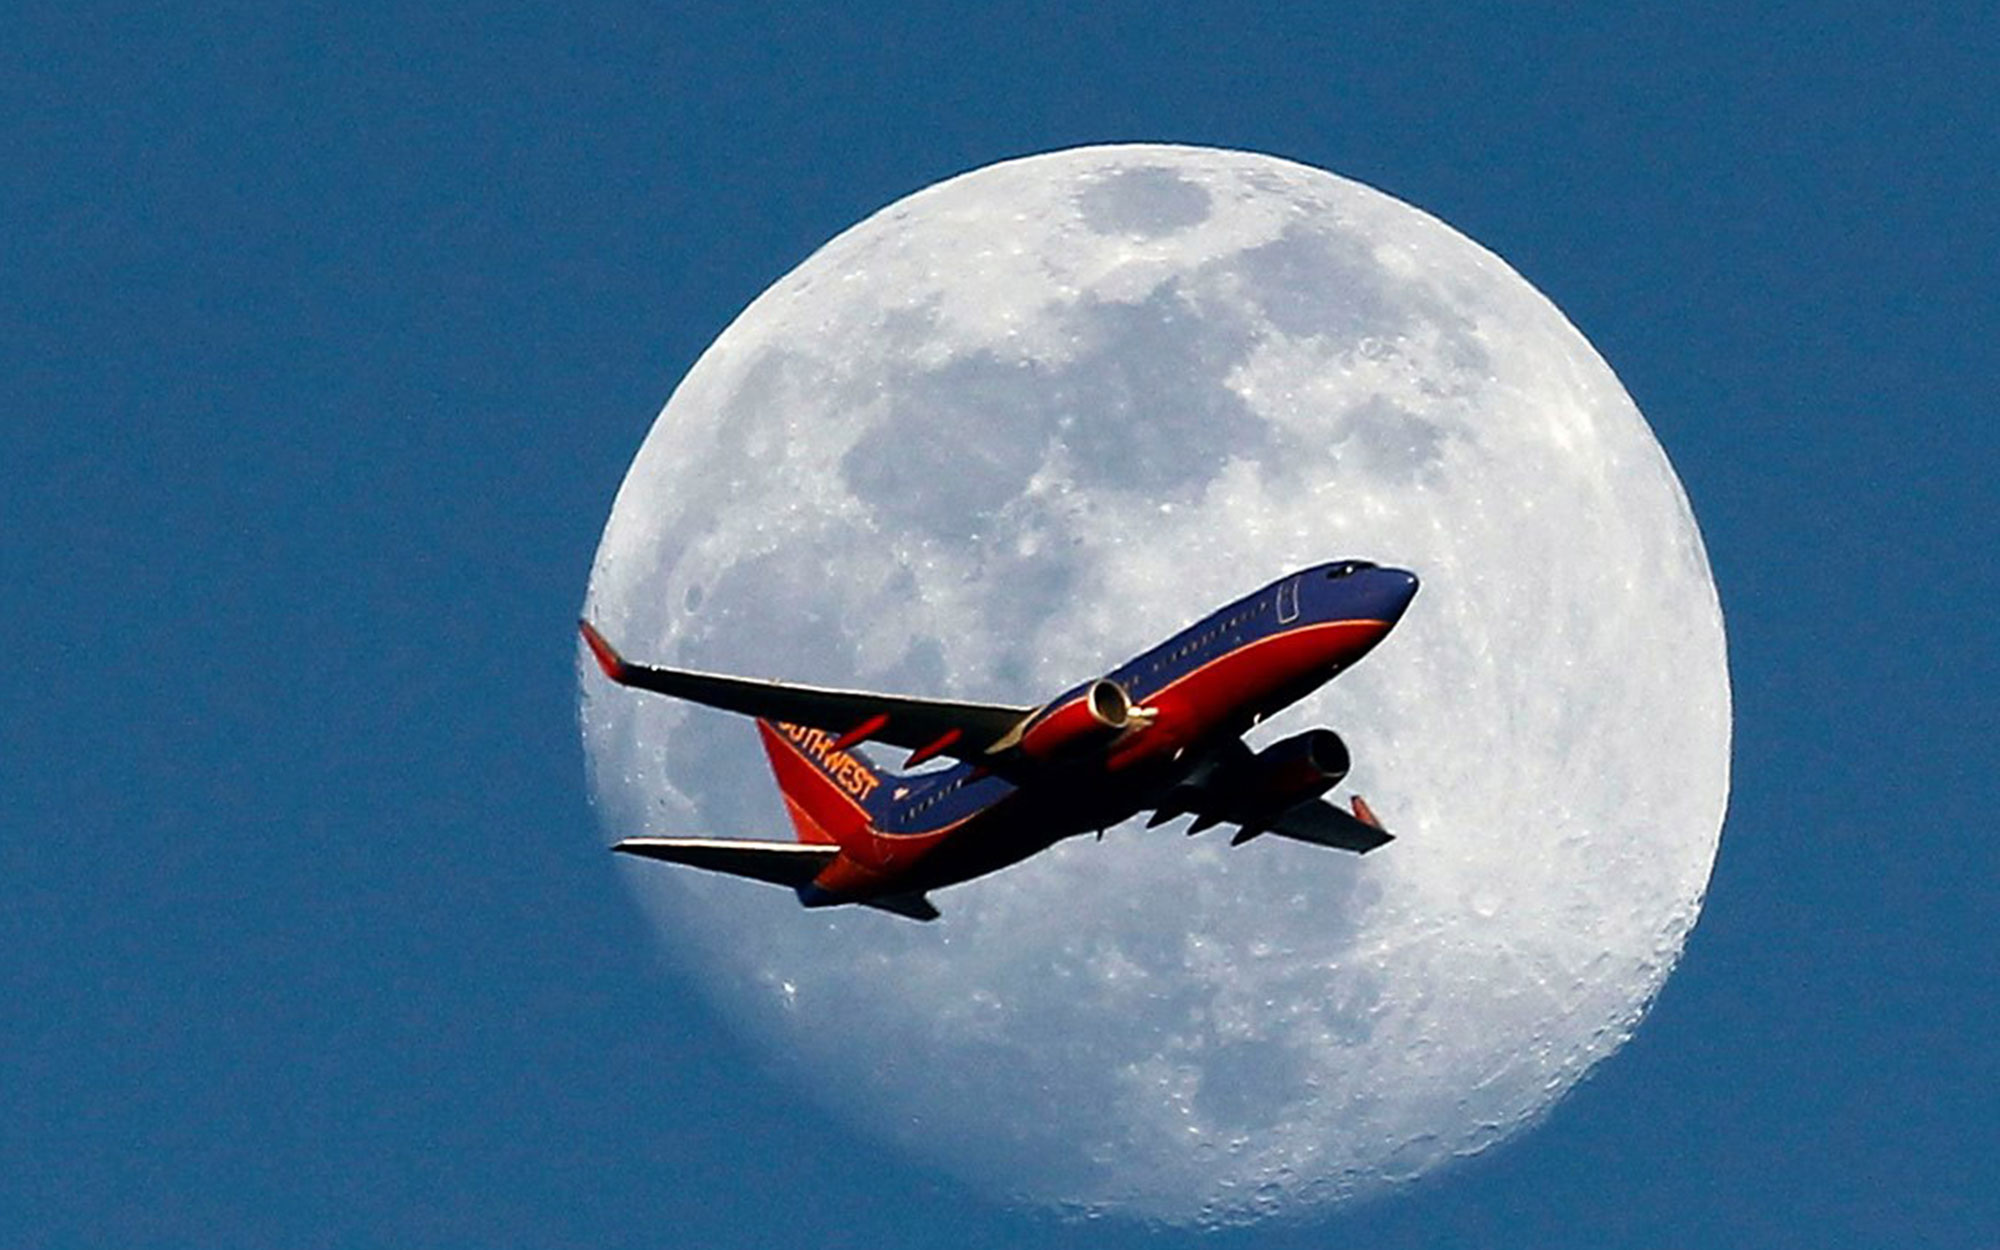 Photographers Capture Images of Airplanes Against Full Moon